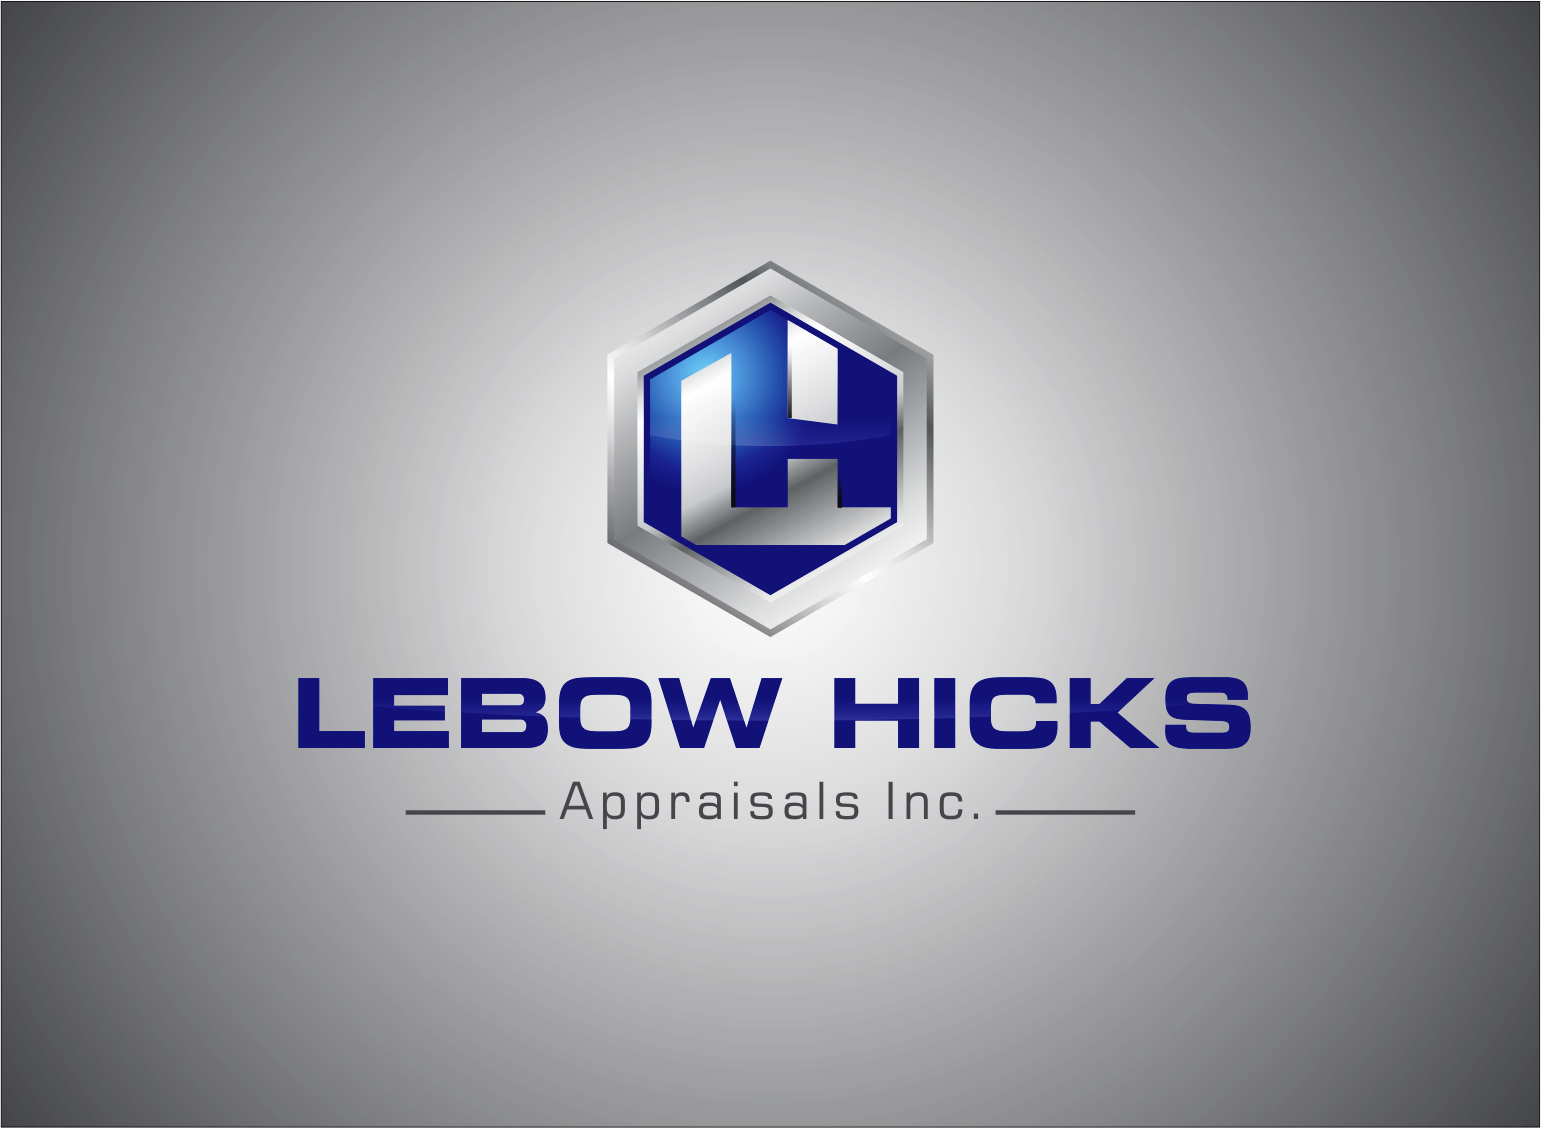 Logo Design by Armada Jamaluddin - Entry No. 128 in the Logo Design Contest Fun Logo Design for Lebow, Hicks Appraisal Inc..